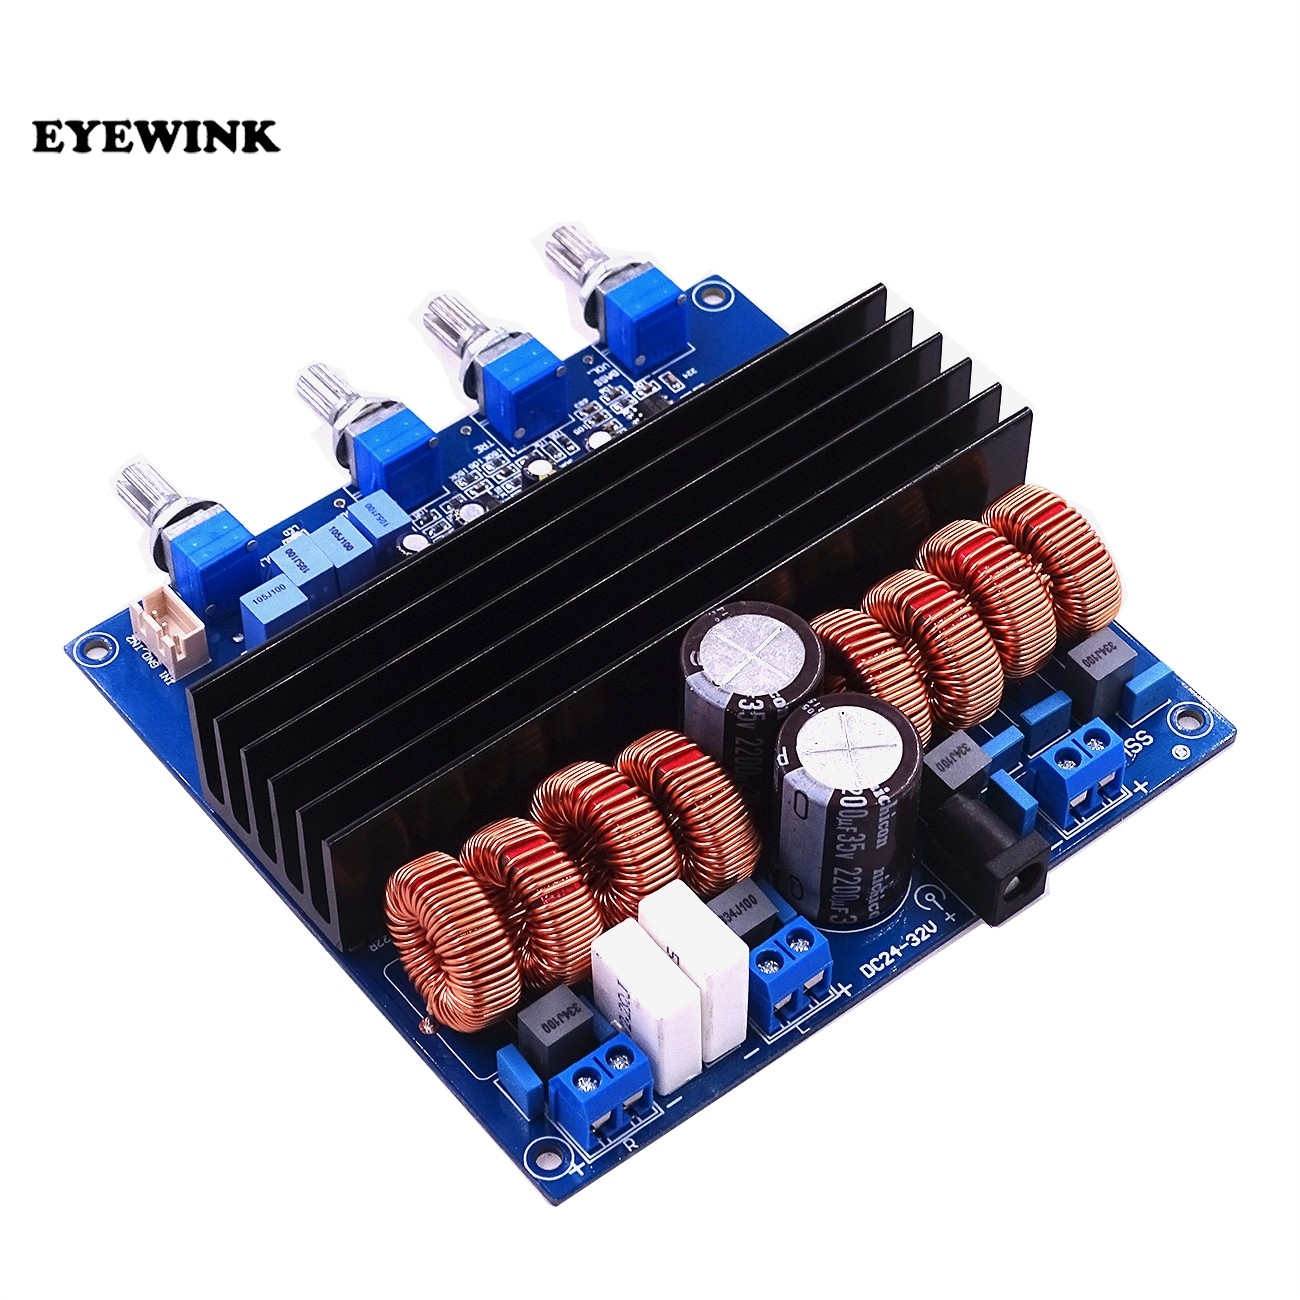 Online Shop 21 High Power Amplifier Plate Product Digital Class D 3 Megabass Circuit With Tl072 Eyewink New Arrival Tda7498 Board 200w 2x100w Electric